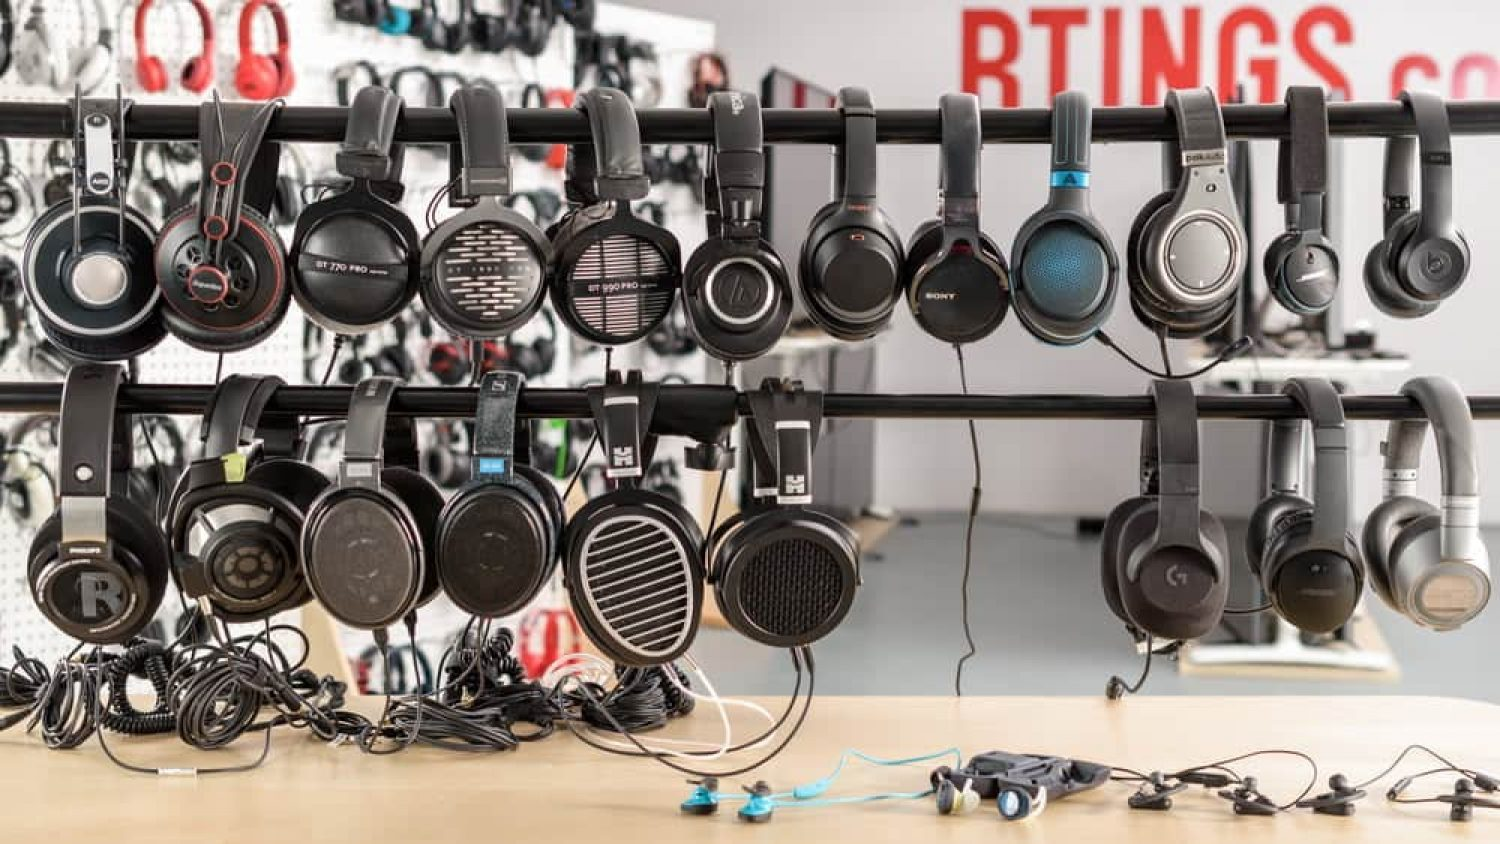 5 Best Headphones for Music 2021: Enjoy the Purest Sound with These Headphones